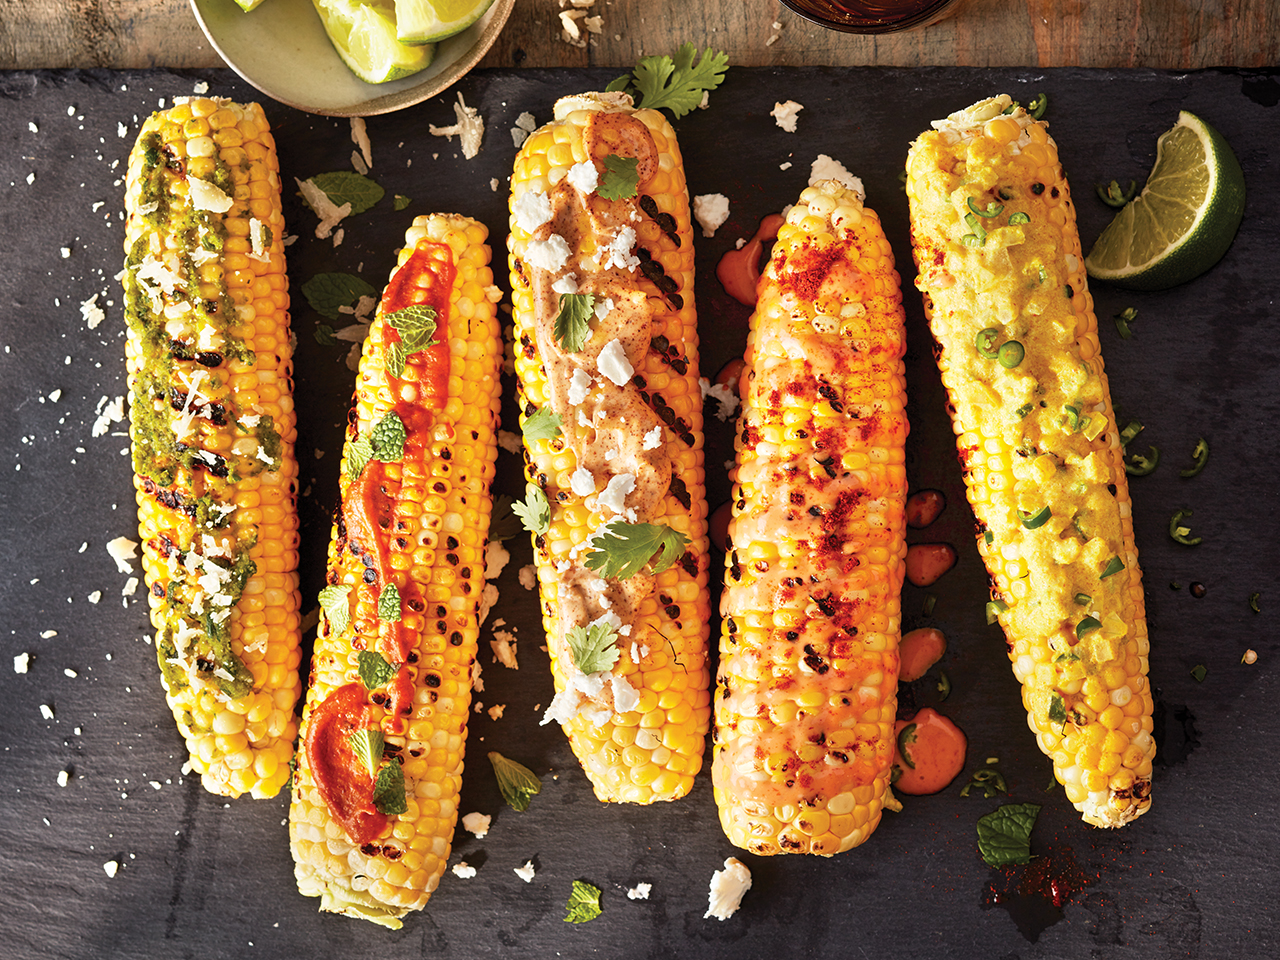 Corn recipes: Mexican elote Grilled corn